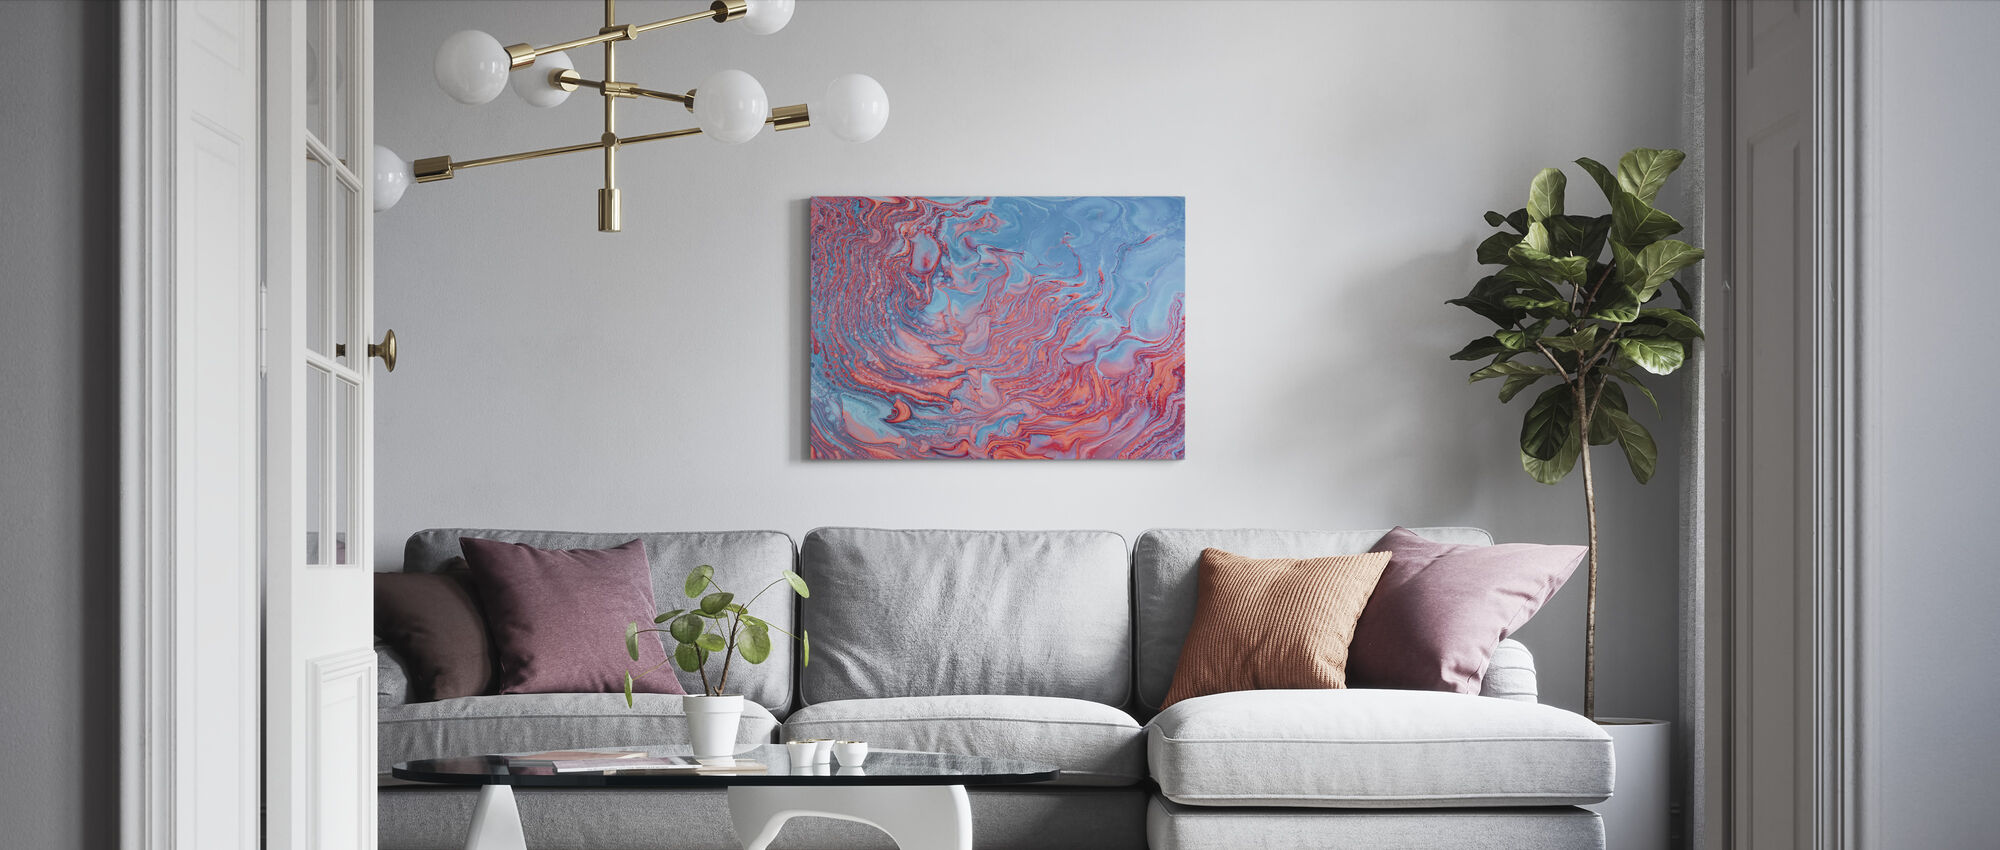 Abstract Painting - Canvas print - Living Room